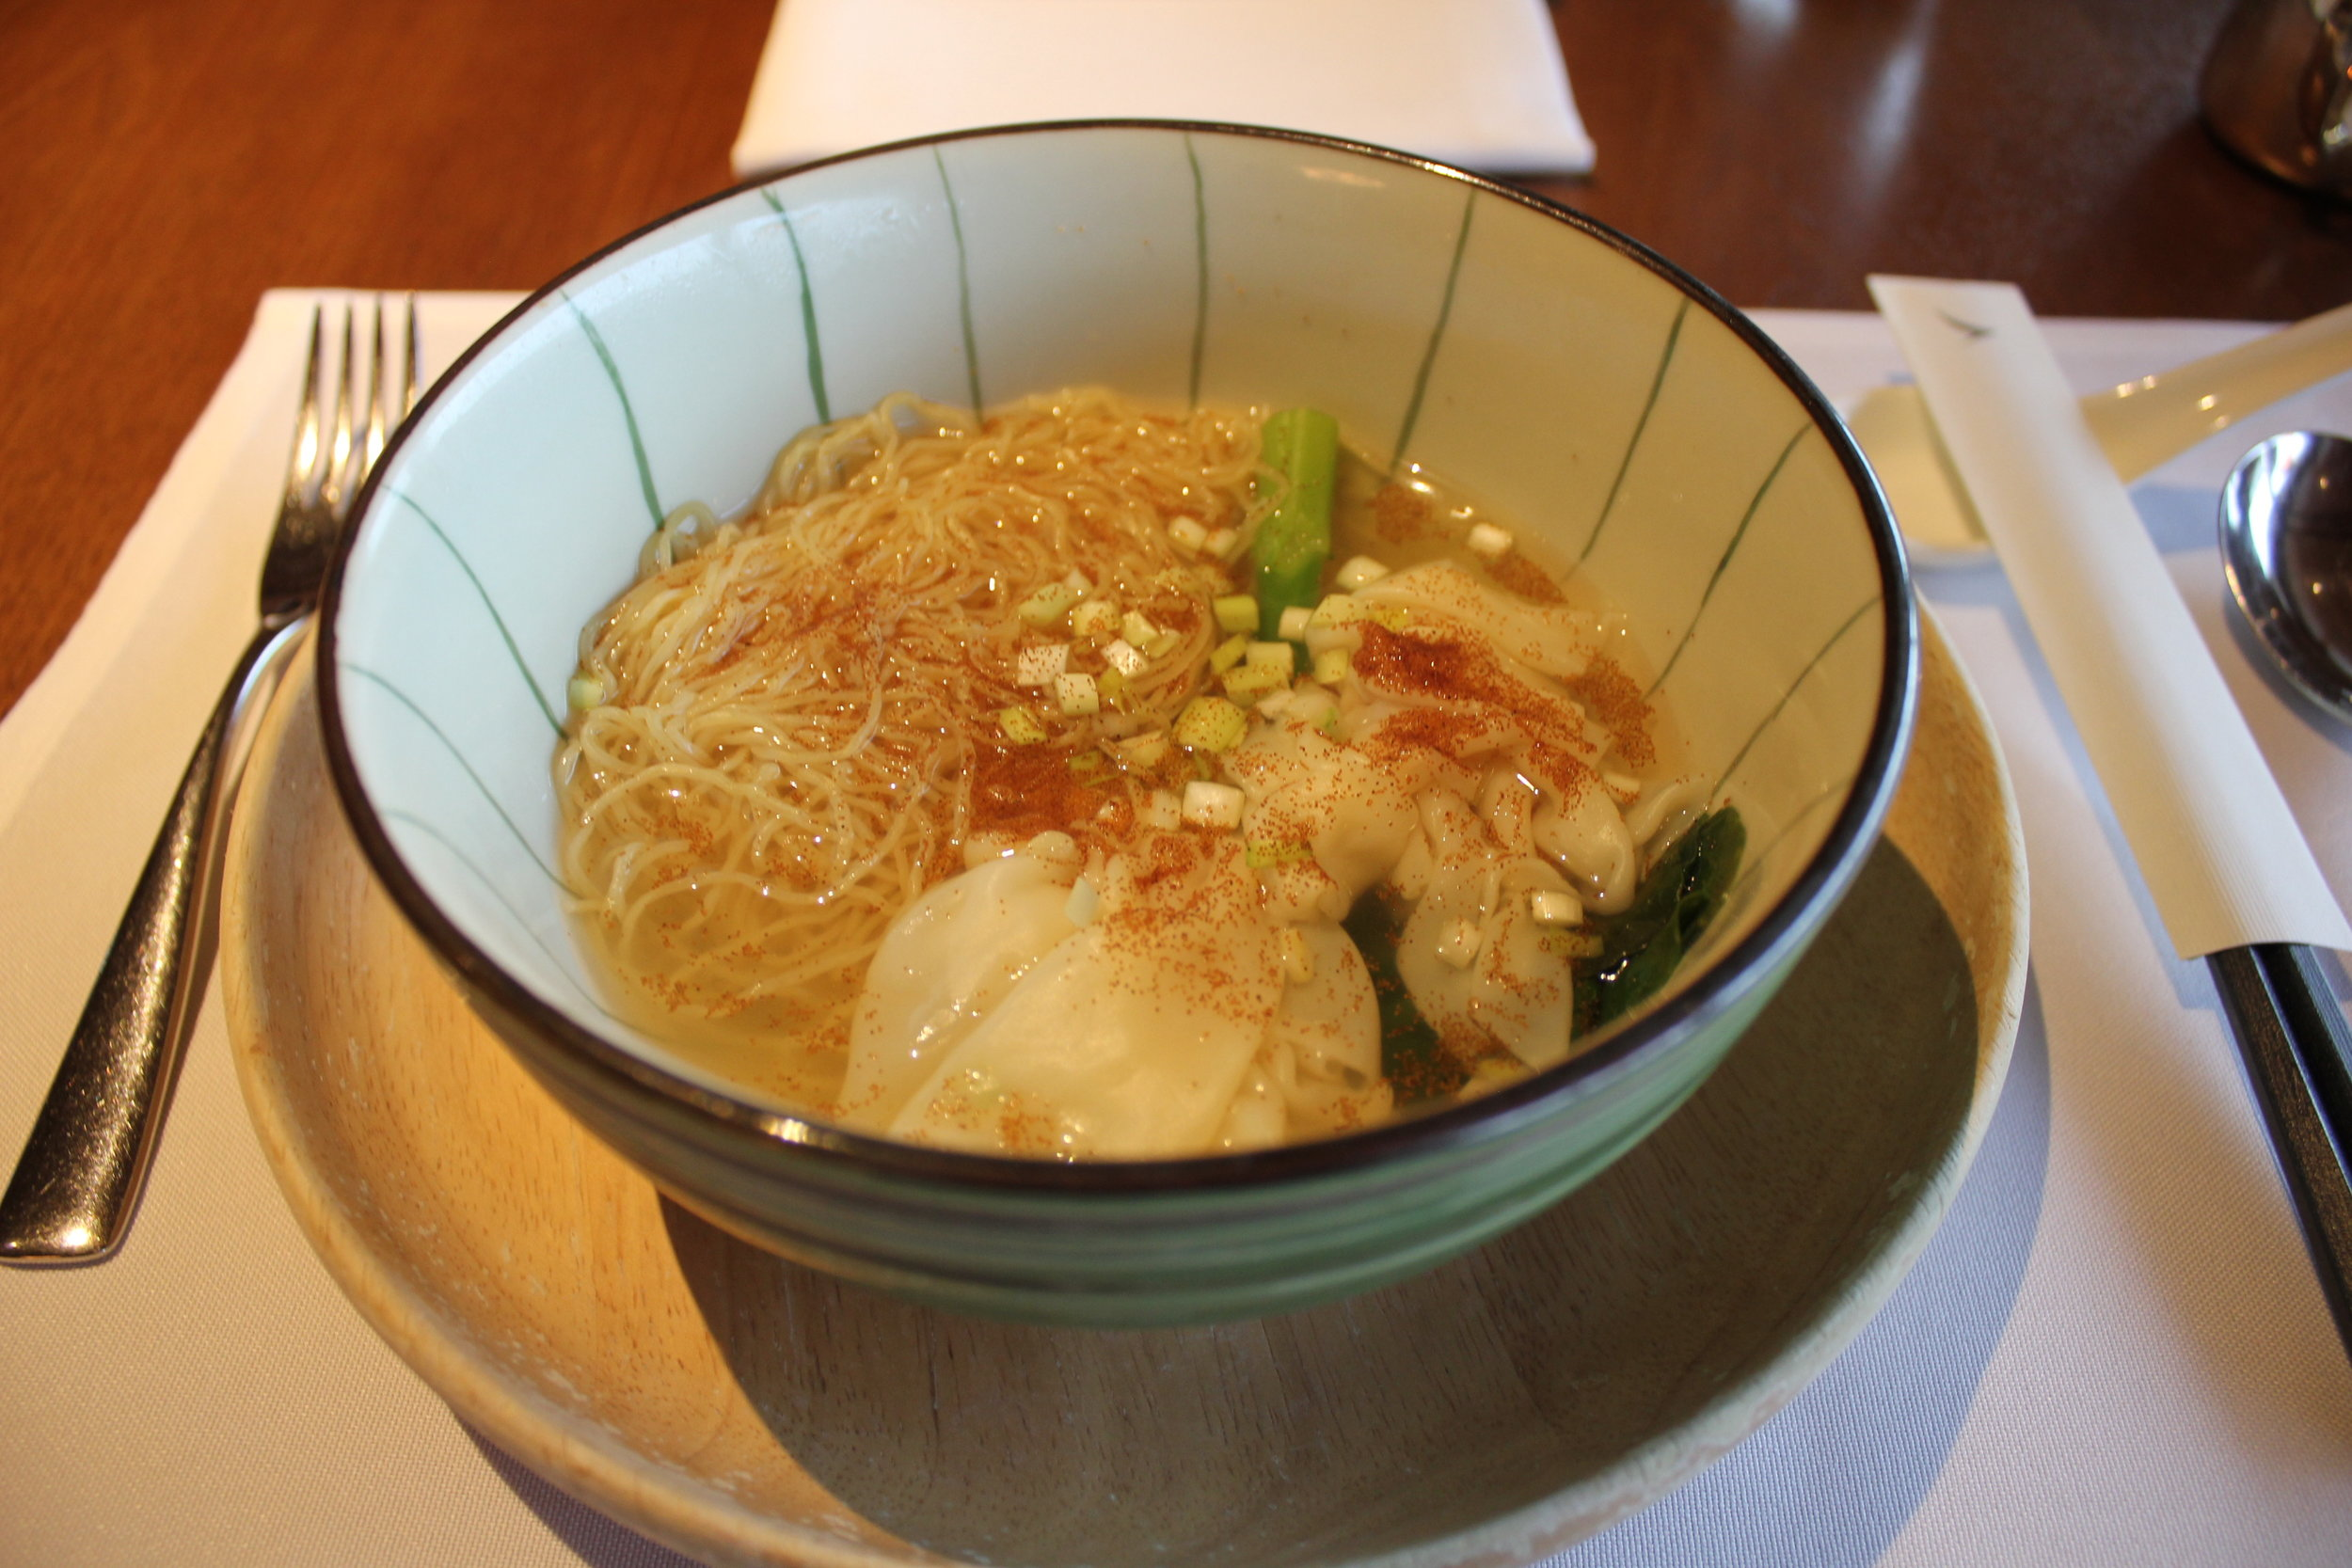 Shrimp wonton noodles at The Pier First Class Lounge, February 2018